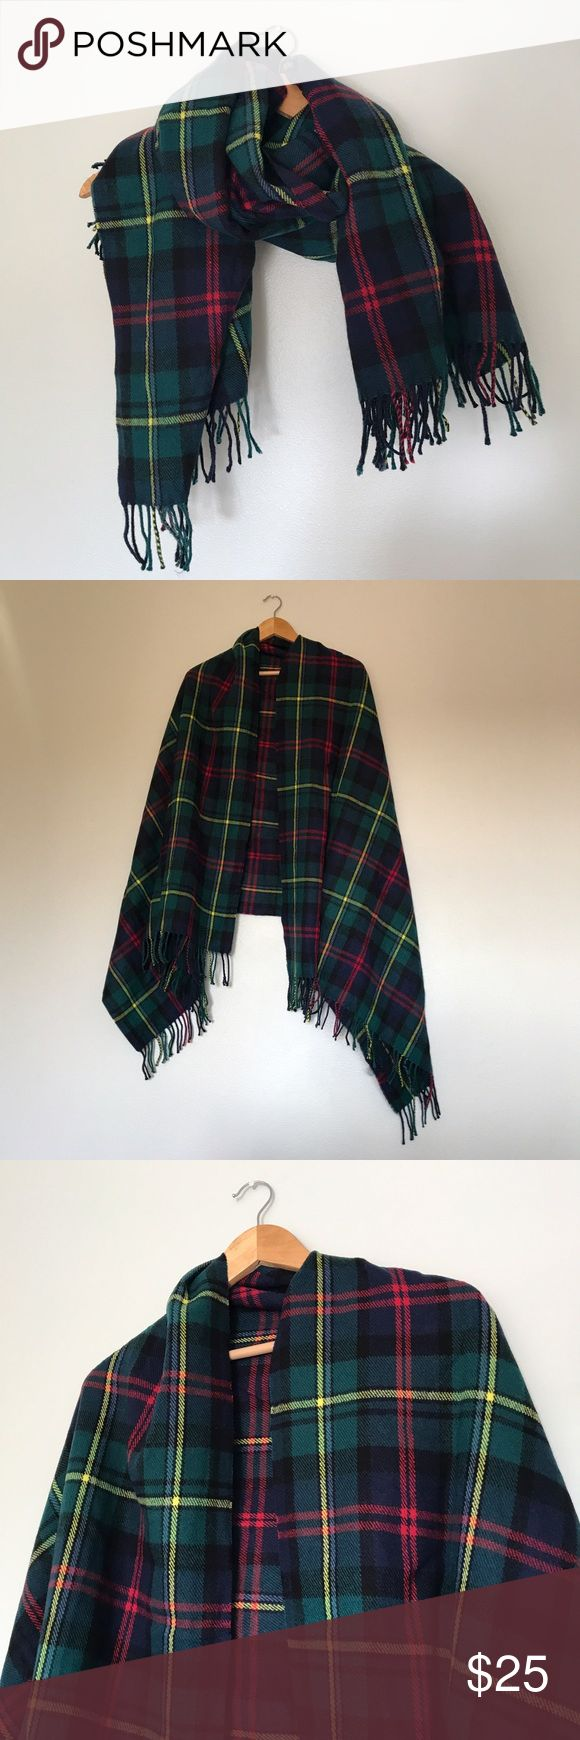 NWOT Green/Yellow/Red Plaid Blanket Scarf NWOT Green/Yellow/Red Plaid Blanket Scarf by Merona. NEVER WORN. I love this plaid scarf so much, but doesn't have any purpose in my CA closet. I hope someone else can love it and get some use out of this lovely and COMFY blanket scarf! :) Merona Accessories Scarves & Wraps